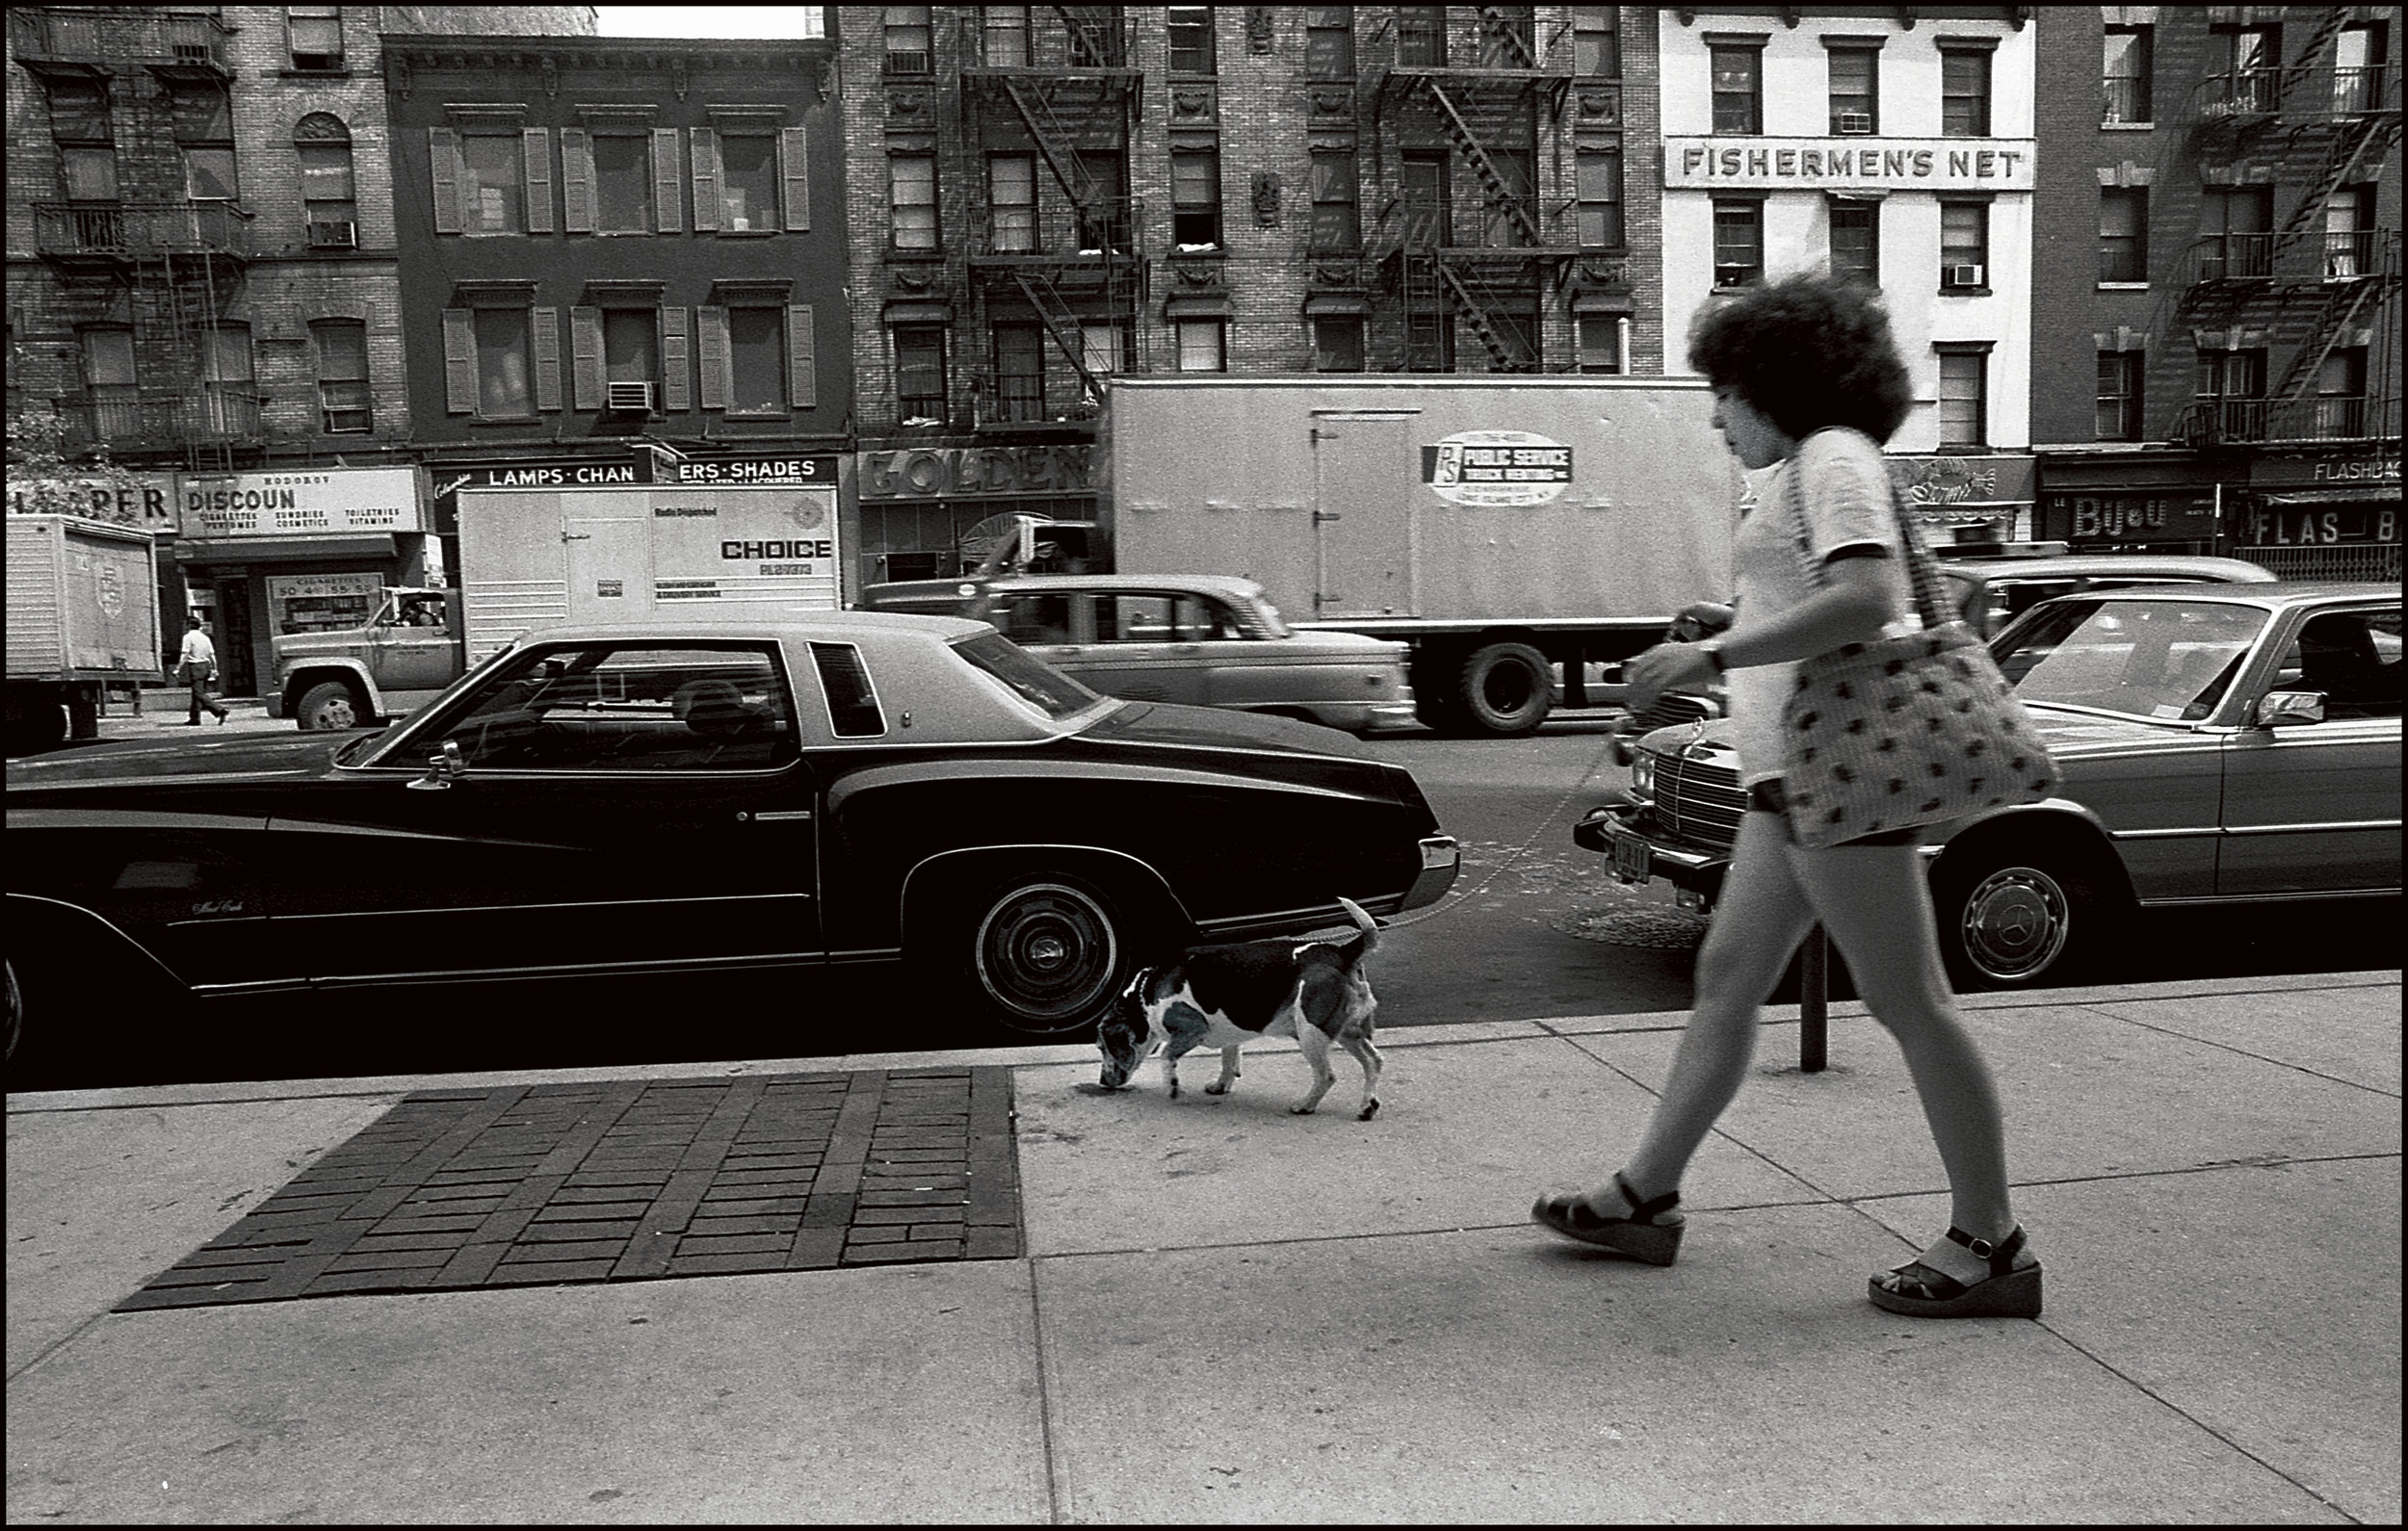 West 23rd Street during the mid-70's